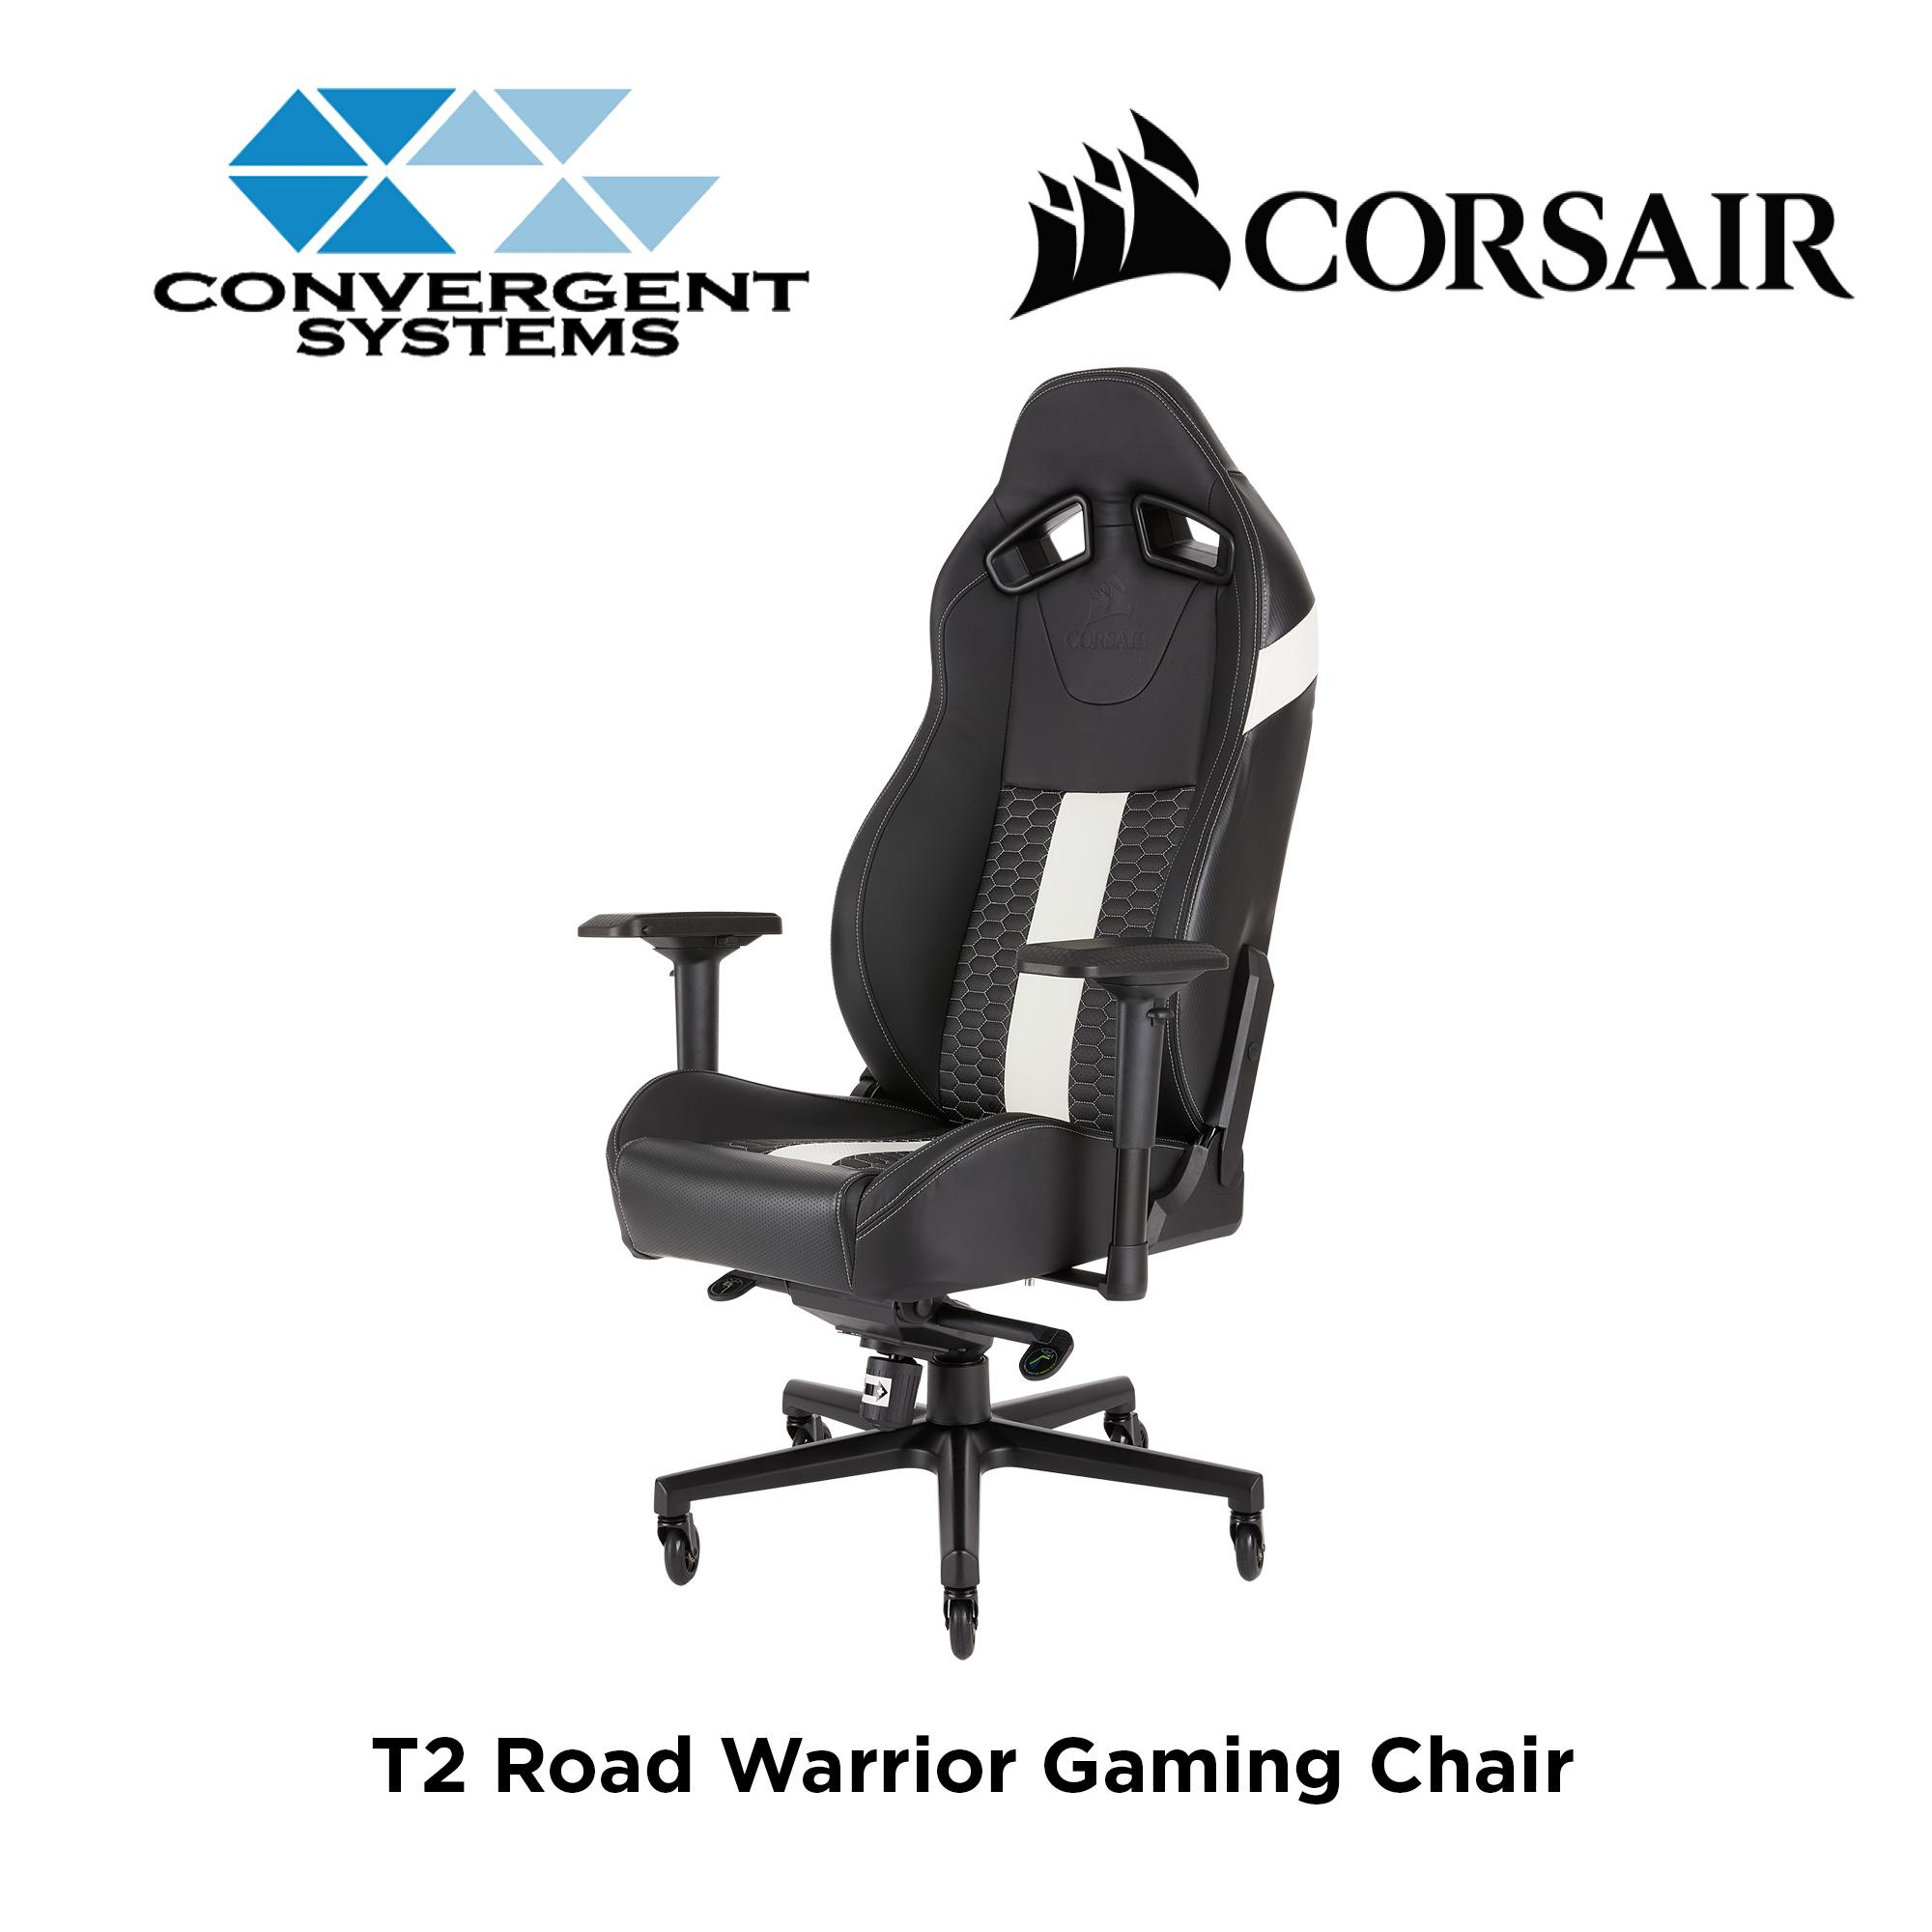 Corsair T2 Road Warrior Gaming Chair - Black / White Stripes